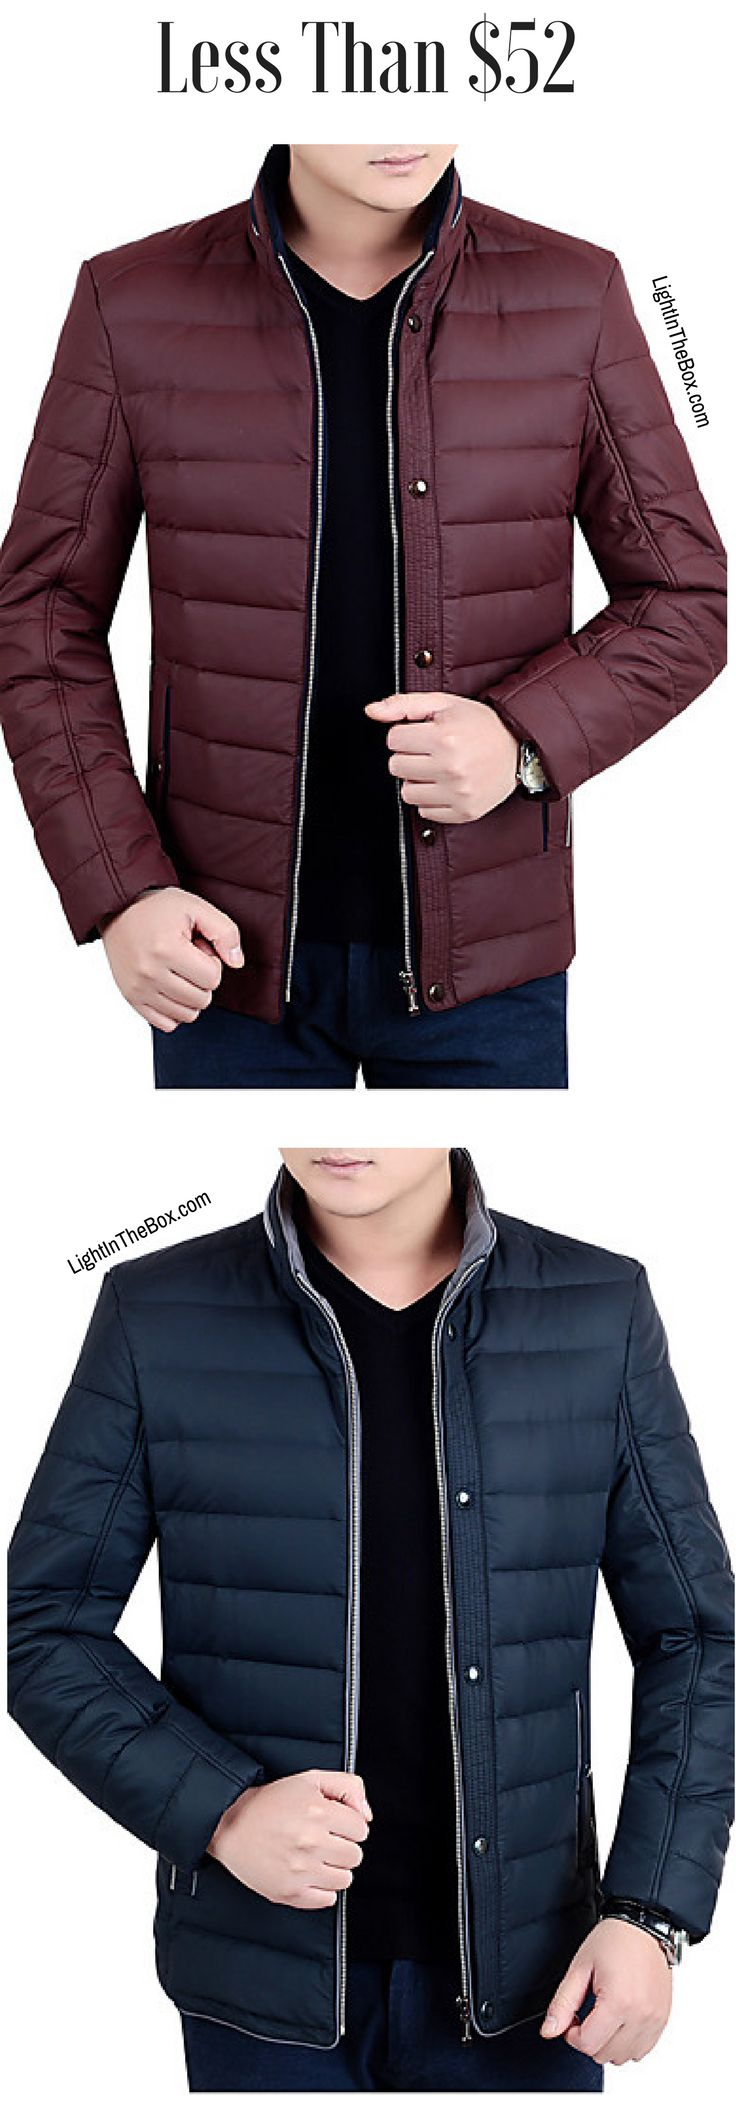 Casual men winter parka jacket.Stay warm this season. Click on the picture to shop it it navy blue and burgundy wine colours at $51.99.